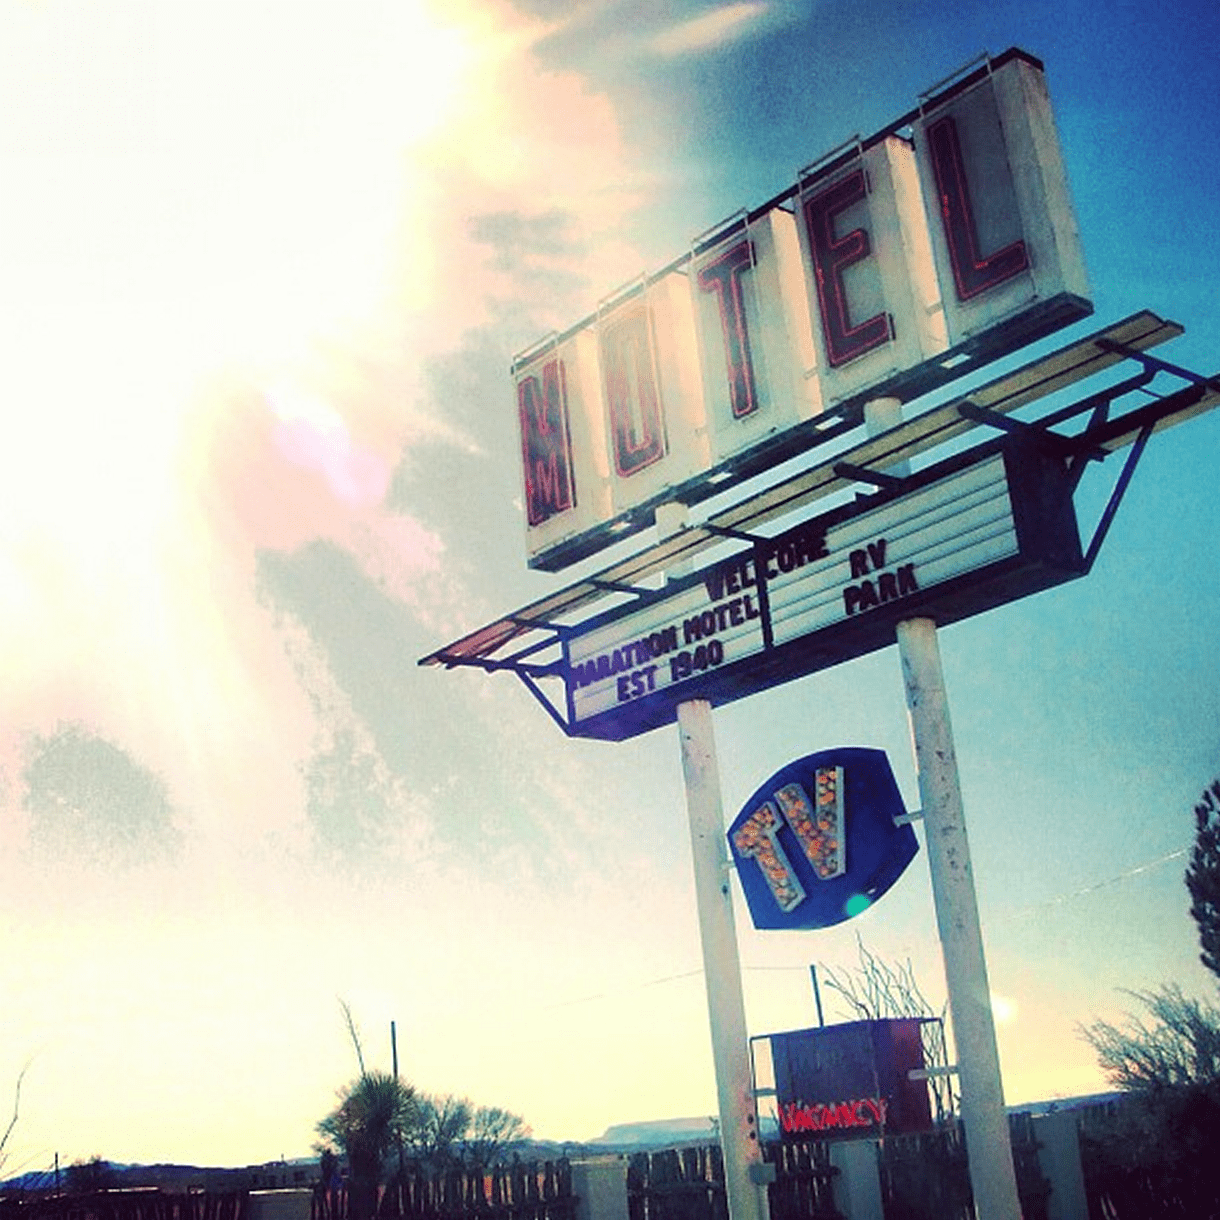 the sun blasts over a motel sign in the desert